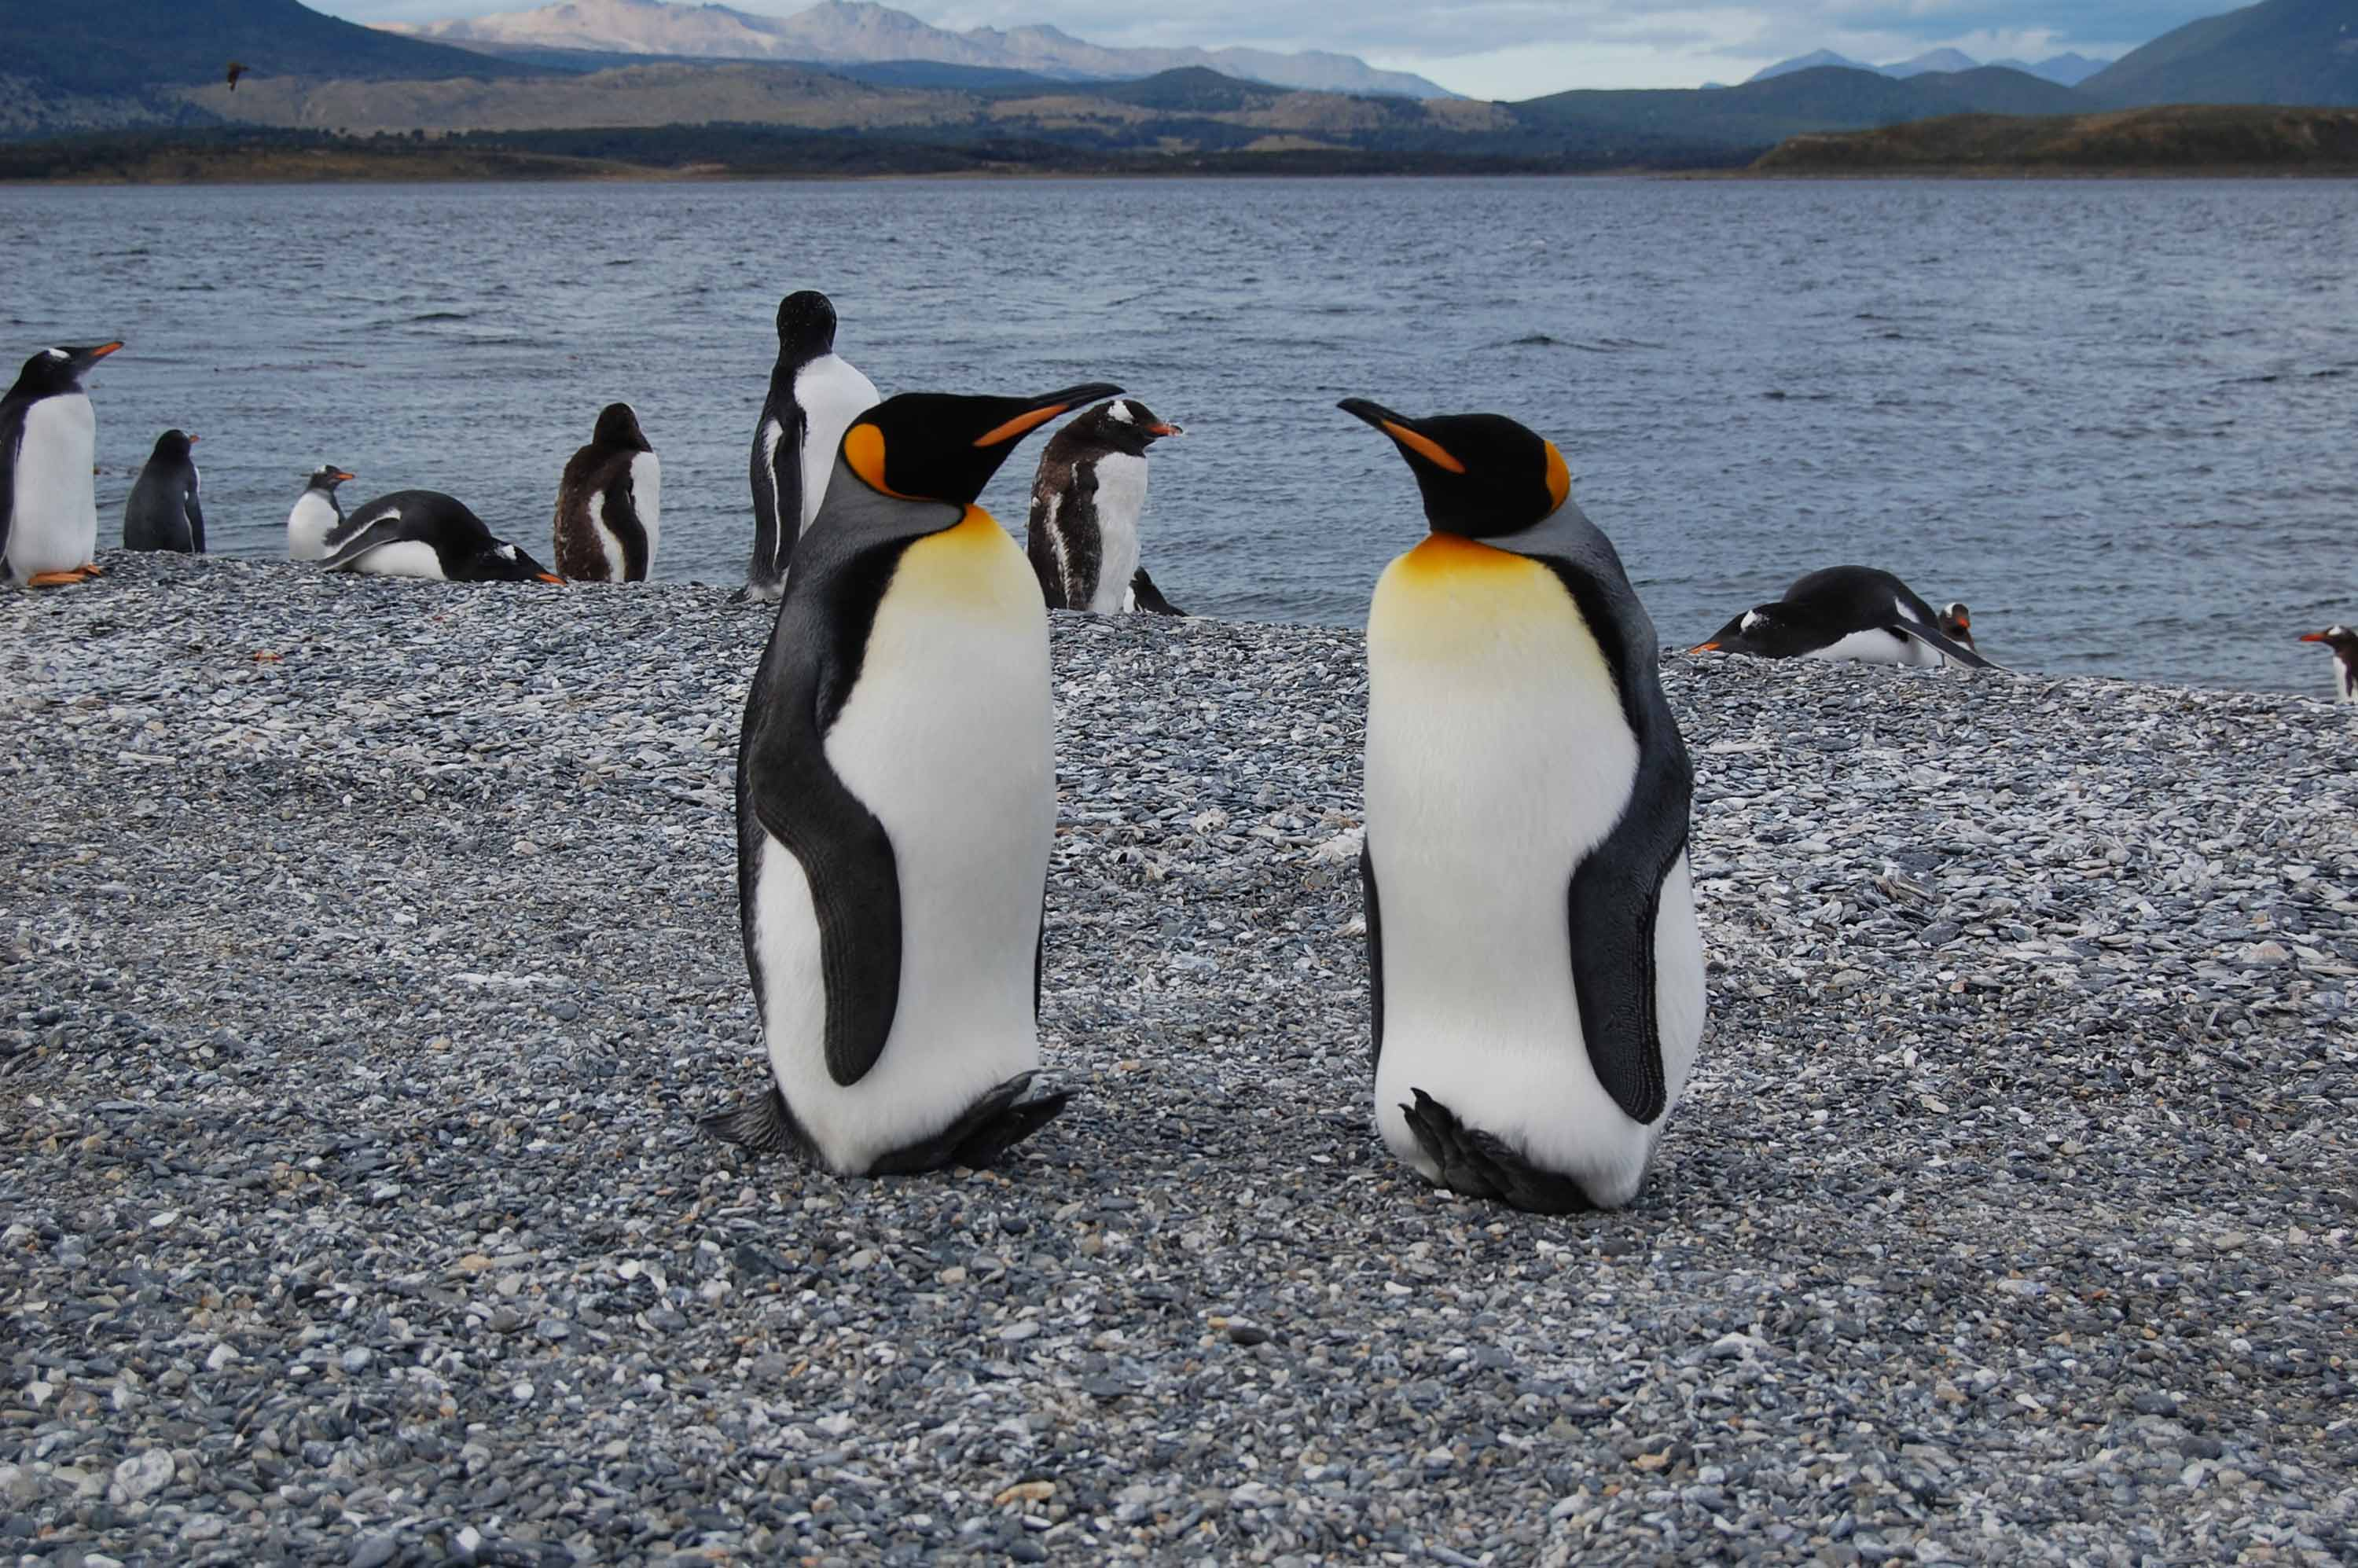 A couple of King penguins looking at each other romantically at Martillo Island.